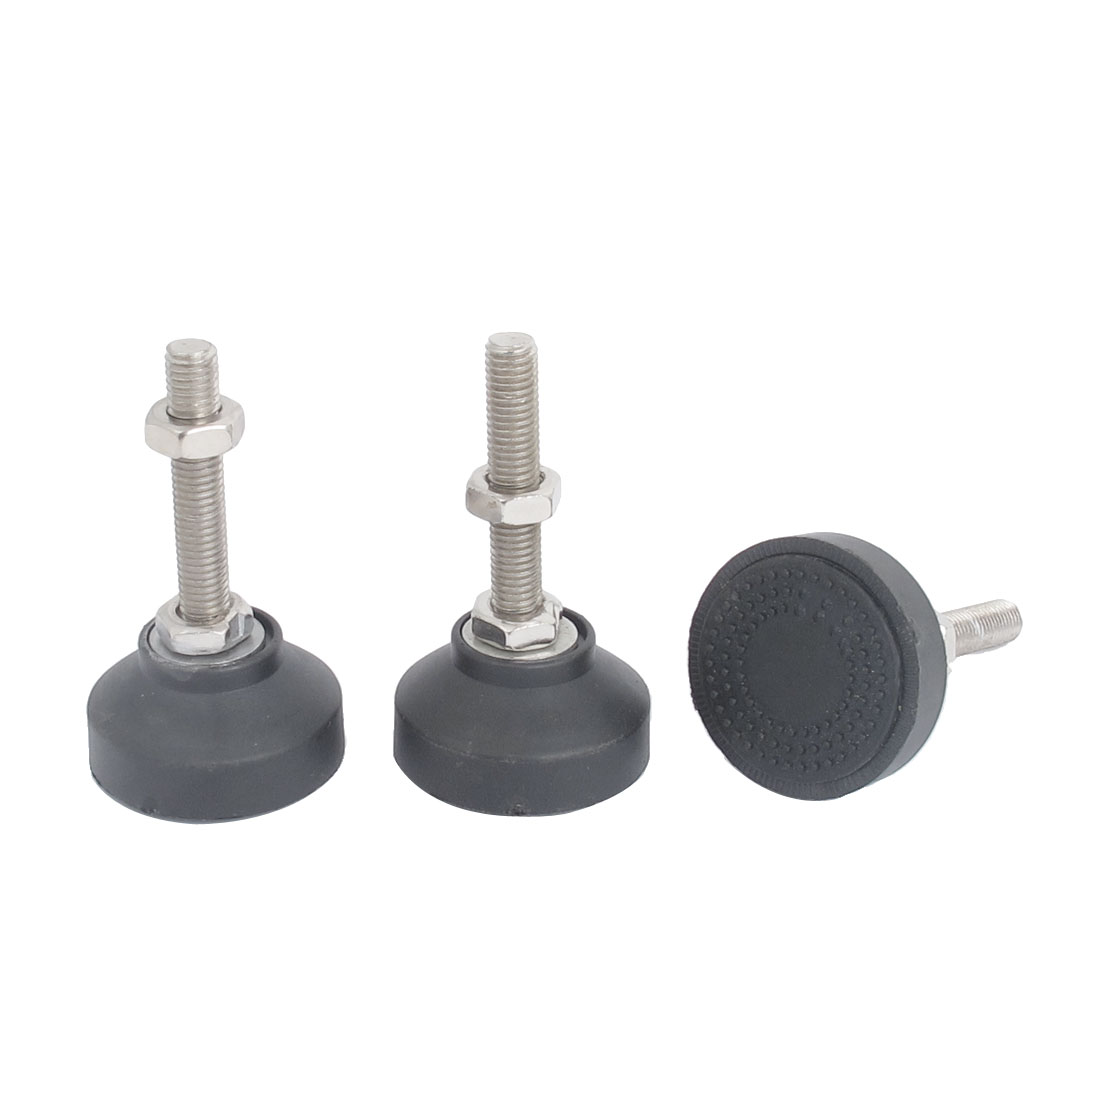 3 Pcs Machine Furniture M10 x 60mm Threaded Leveling Feet Foot Mounts Pad Mat